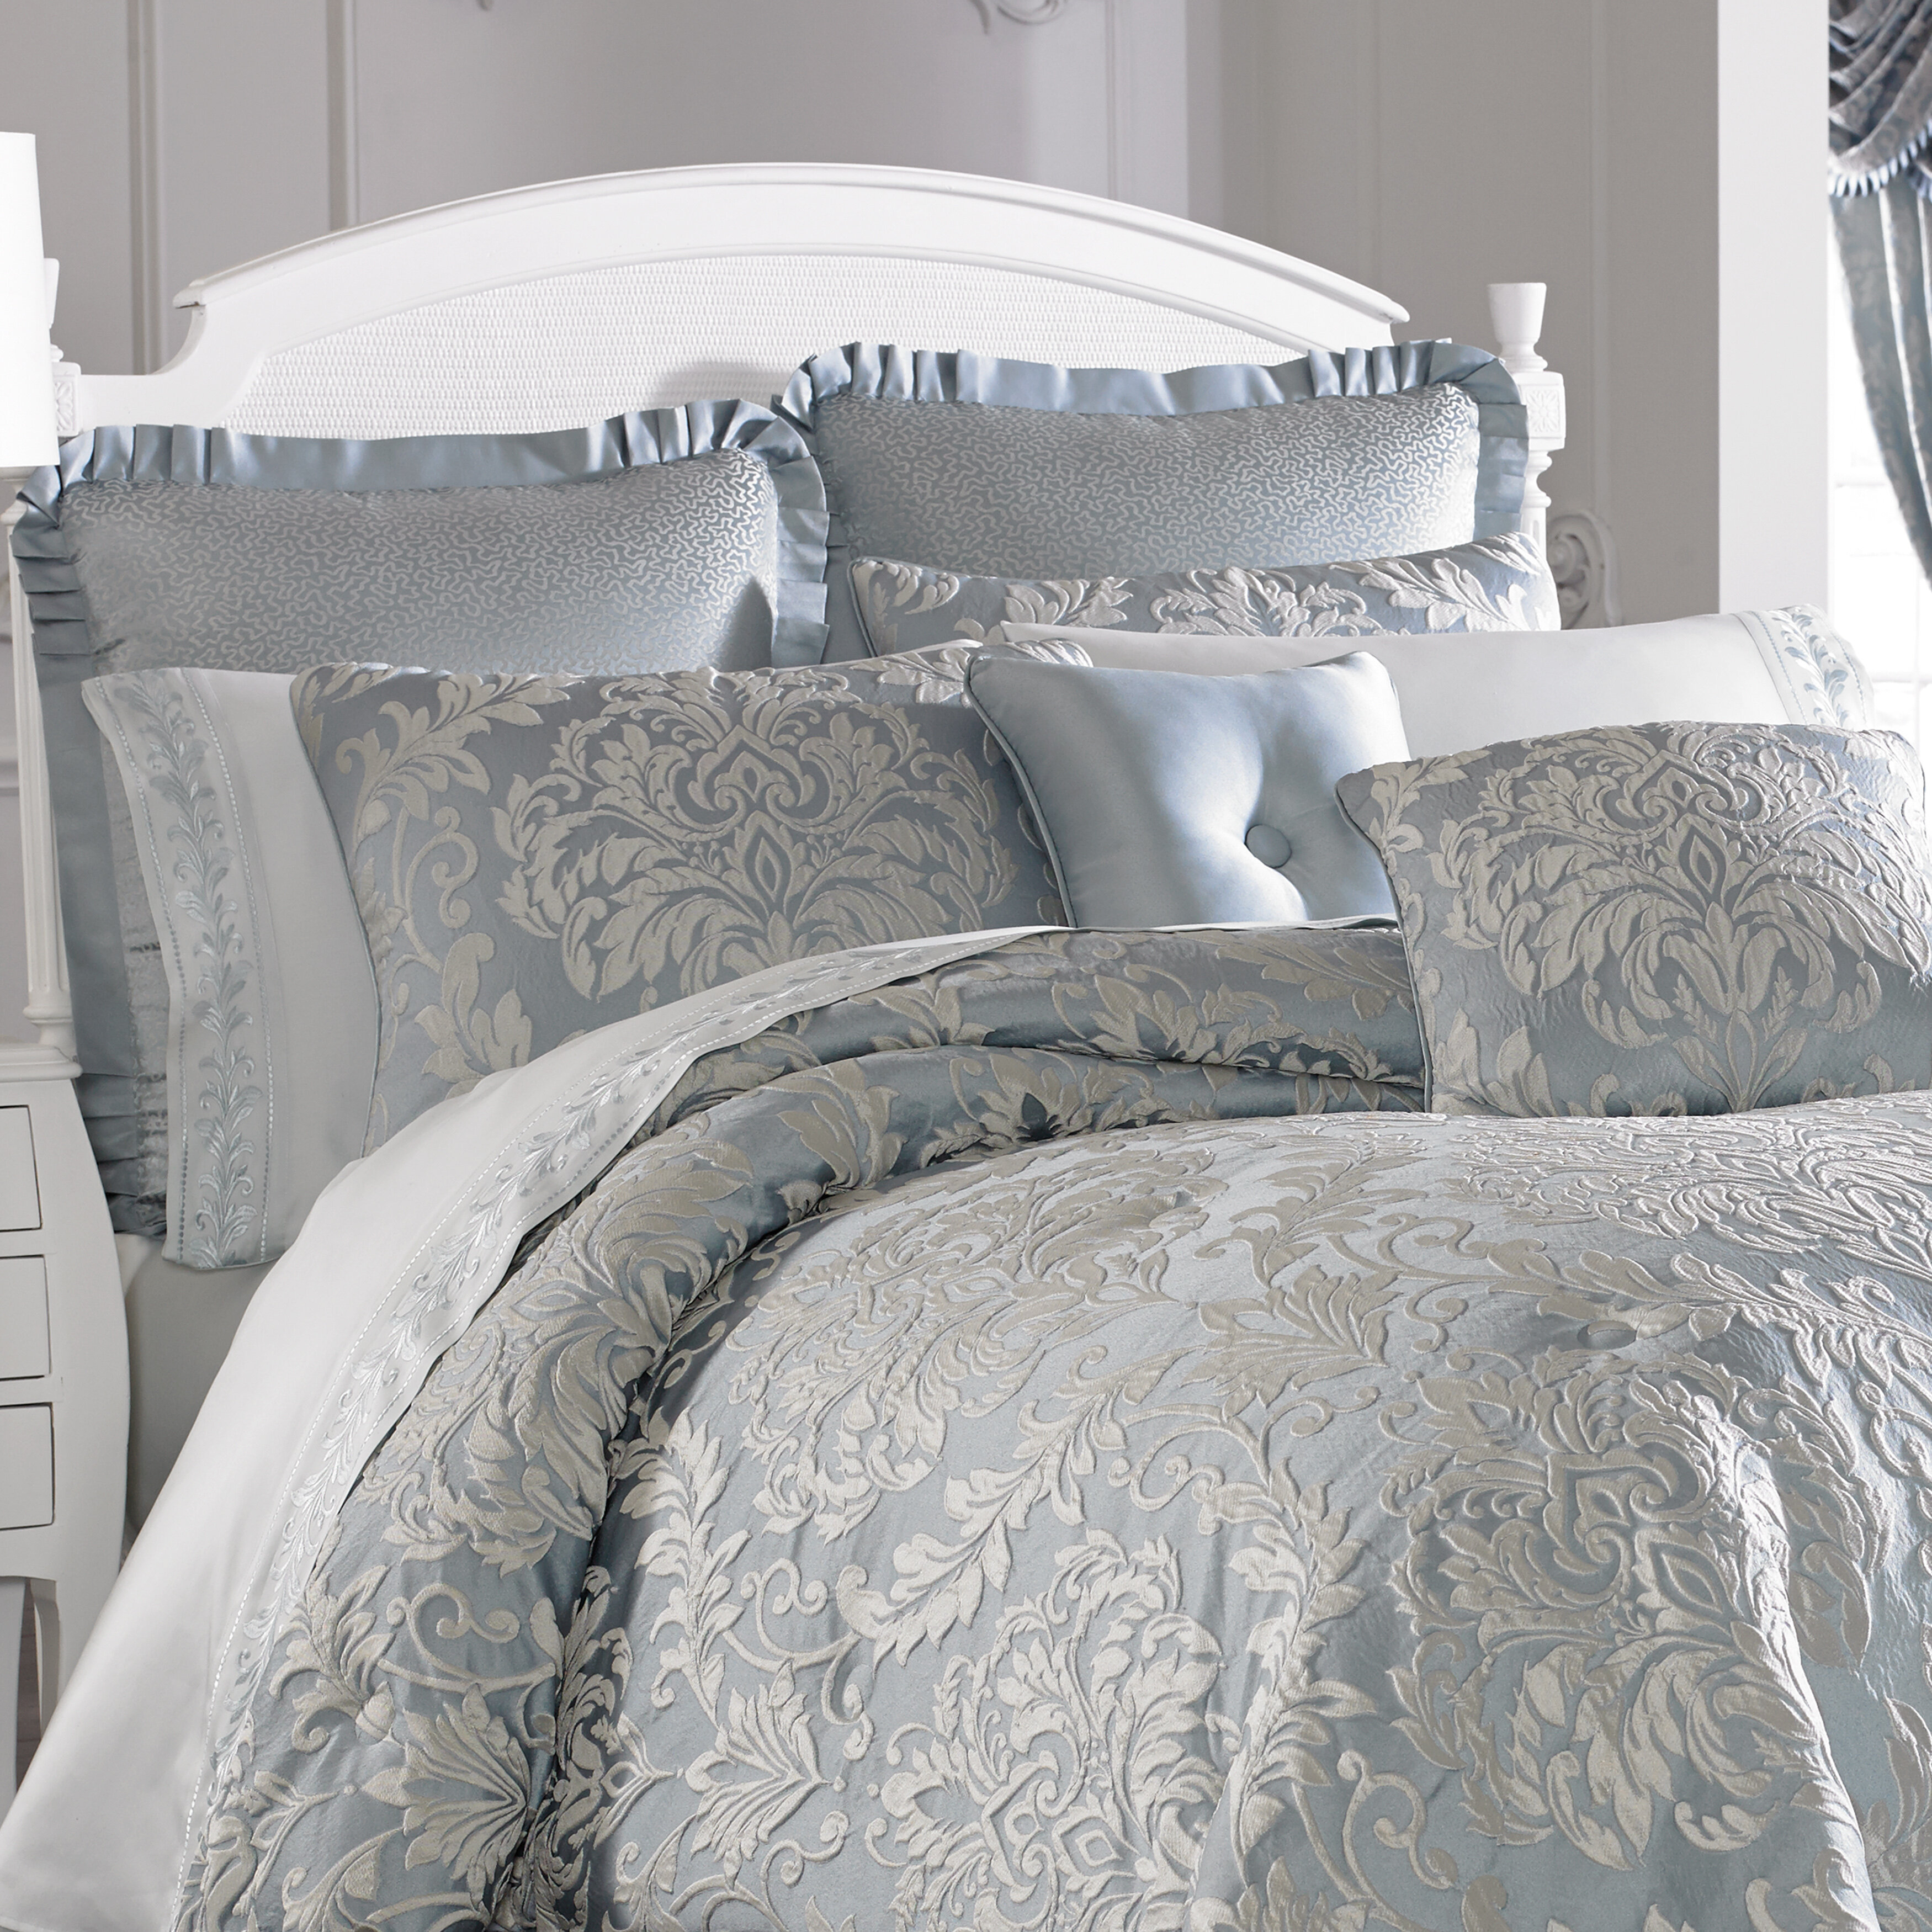 grey comforter lush accent black comforterivory and decor duvets covers elegant rubber of full slatsy white with ivory beddingruffle home ruched ruffle twin size charming king belle for set metal uk piece single duvet xl feet ruffled amazoncom cover ticking queen gold frame chic canada sophistication form striped